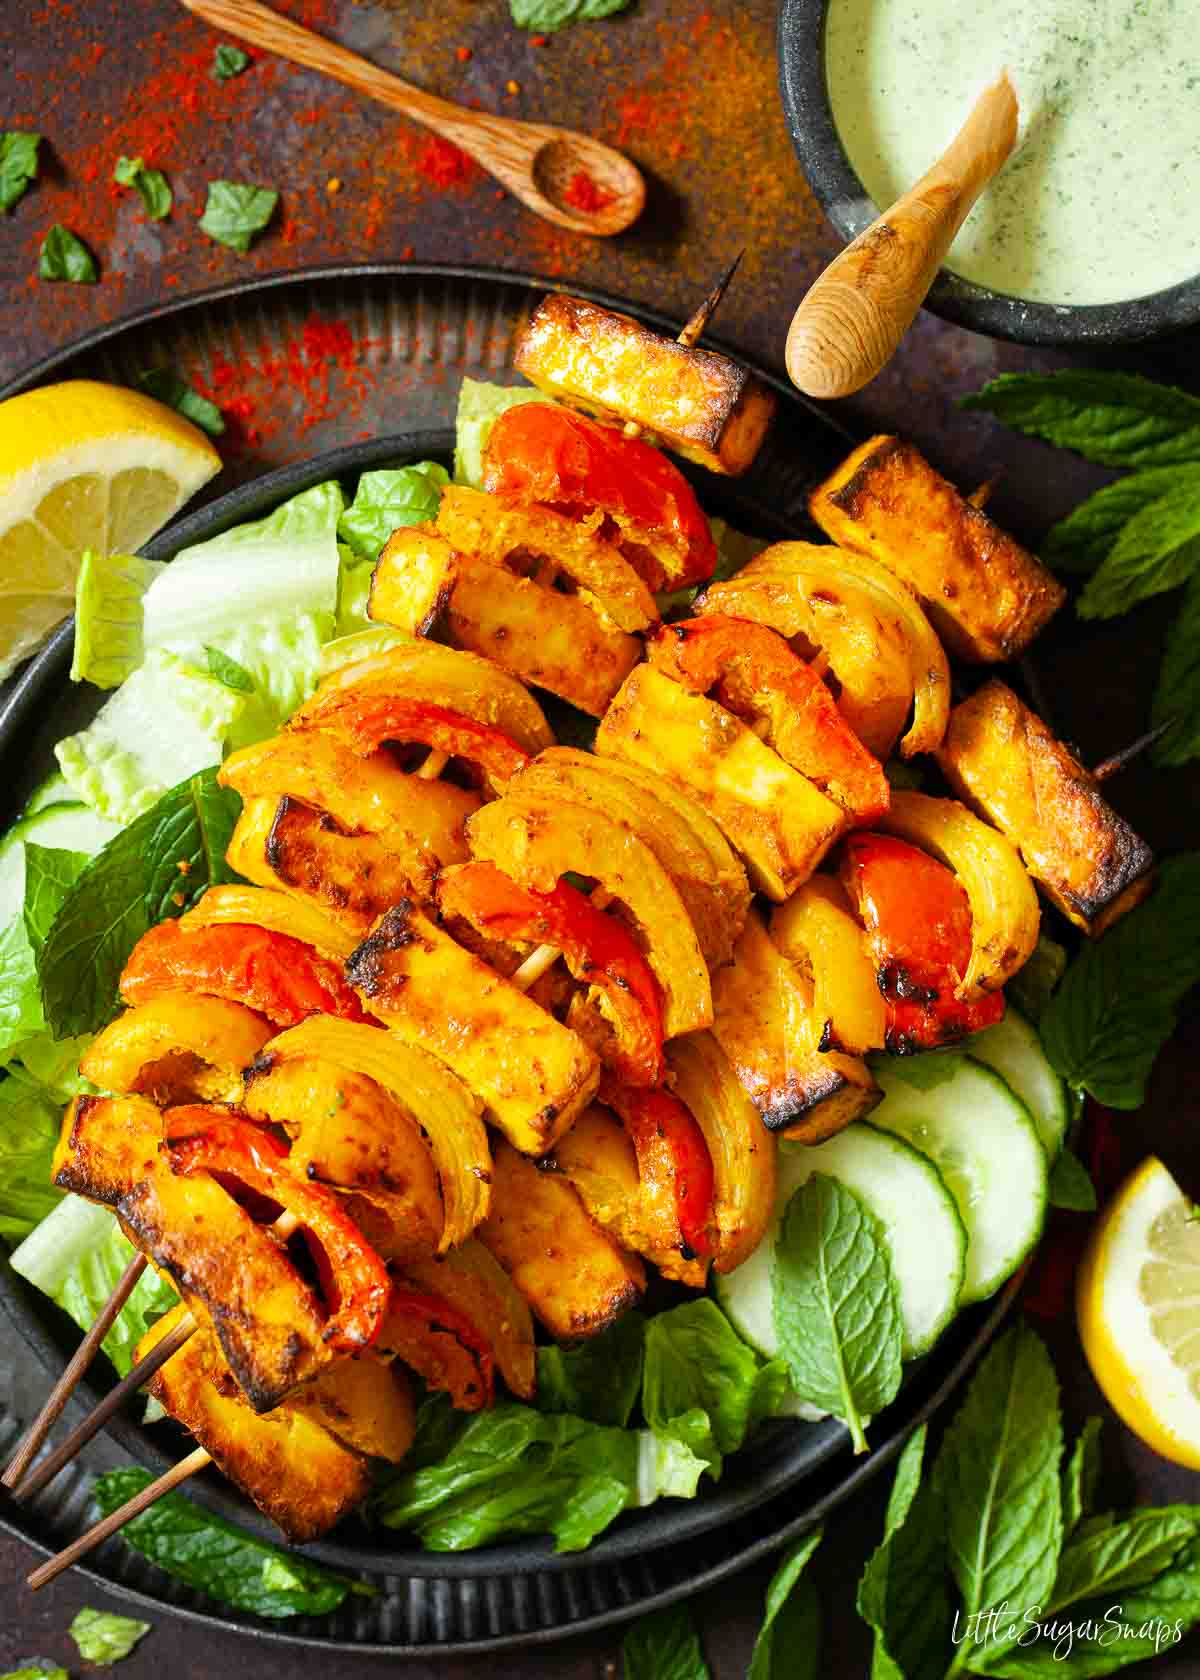 Paneer tikka on skewers with red and yellow peppers